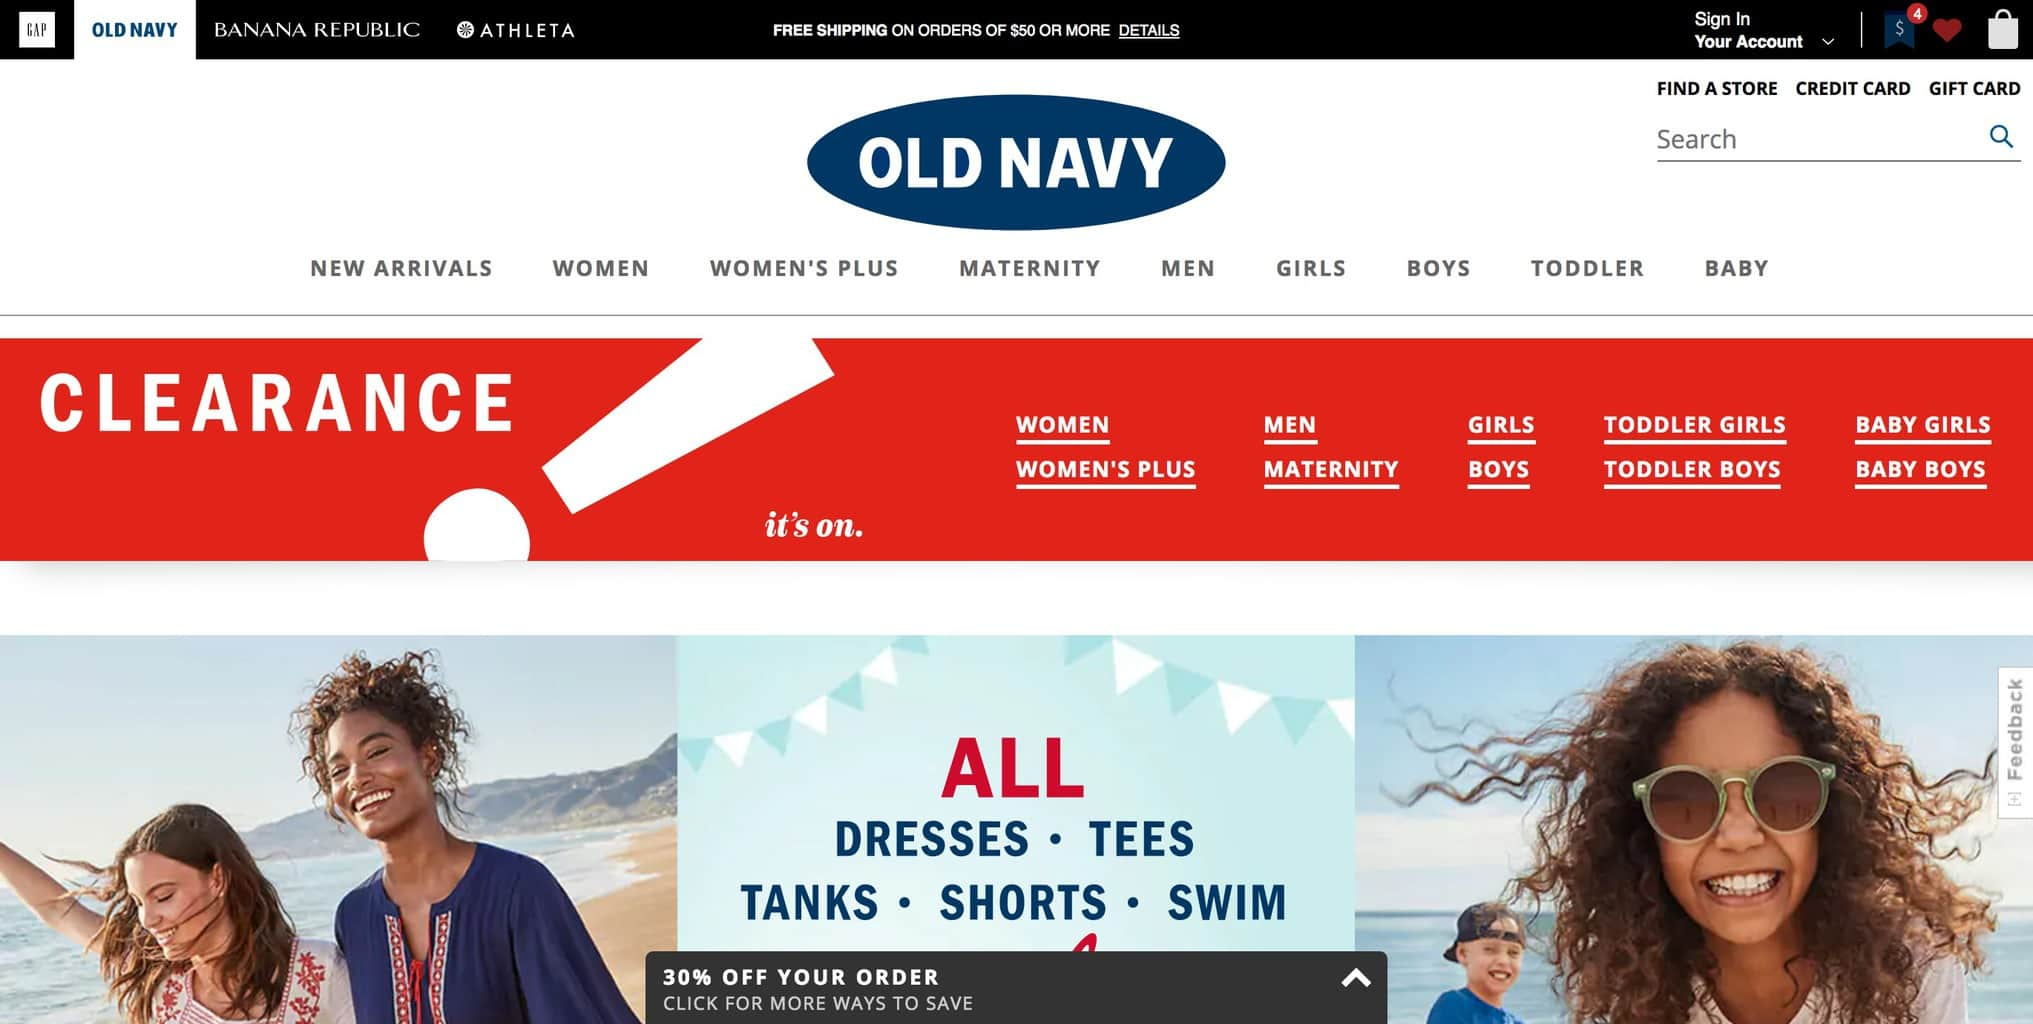 Best cheap shopping sites and clothing websites on a budget: Old Navy has amazing affordable clothing for women and men